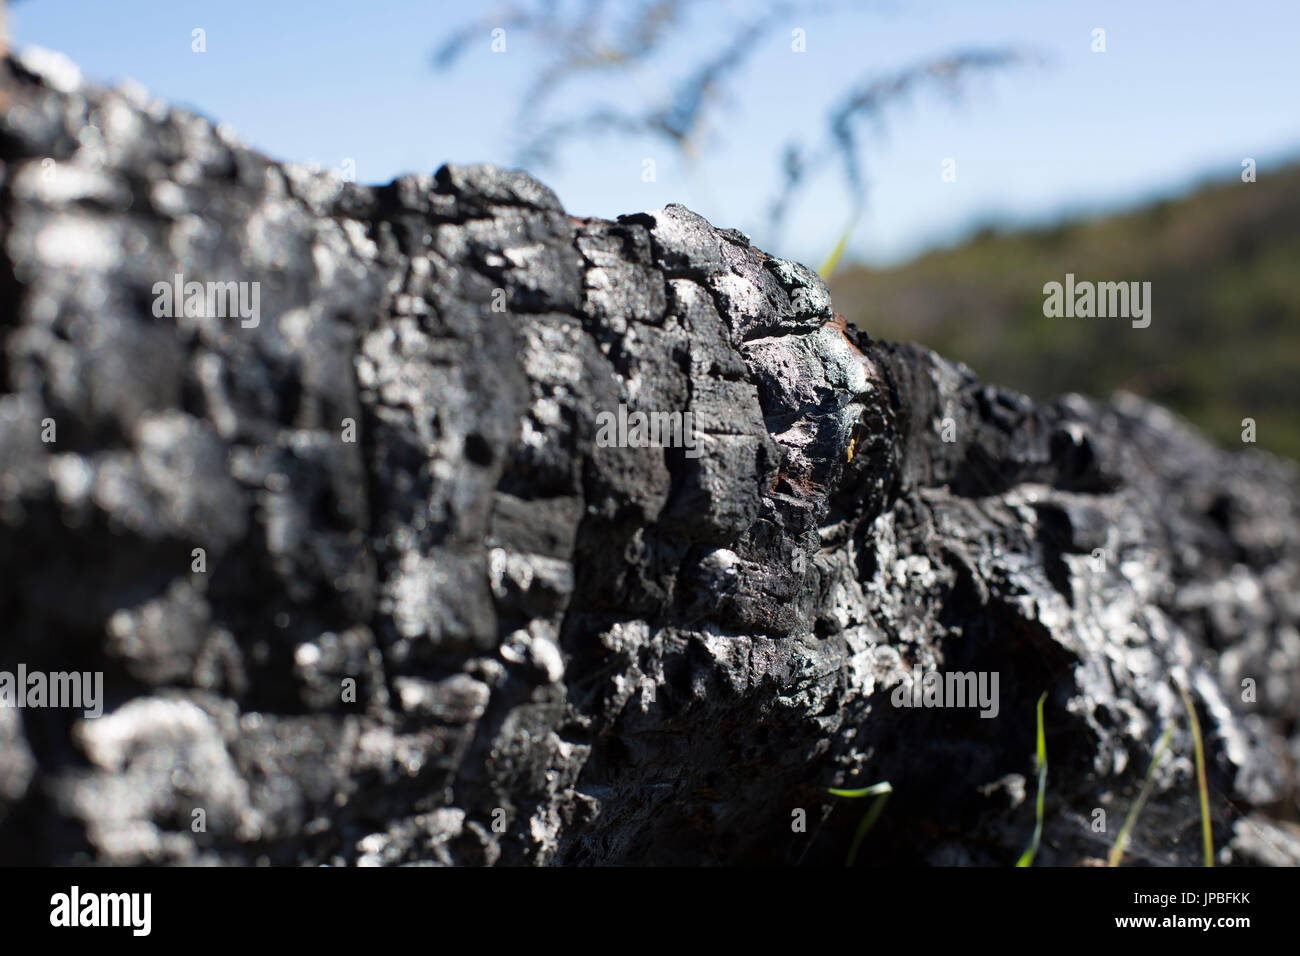 charred tree of the conflagration in 2012 on La Gomera, Spain - Stock Image